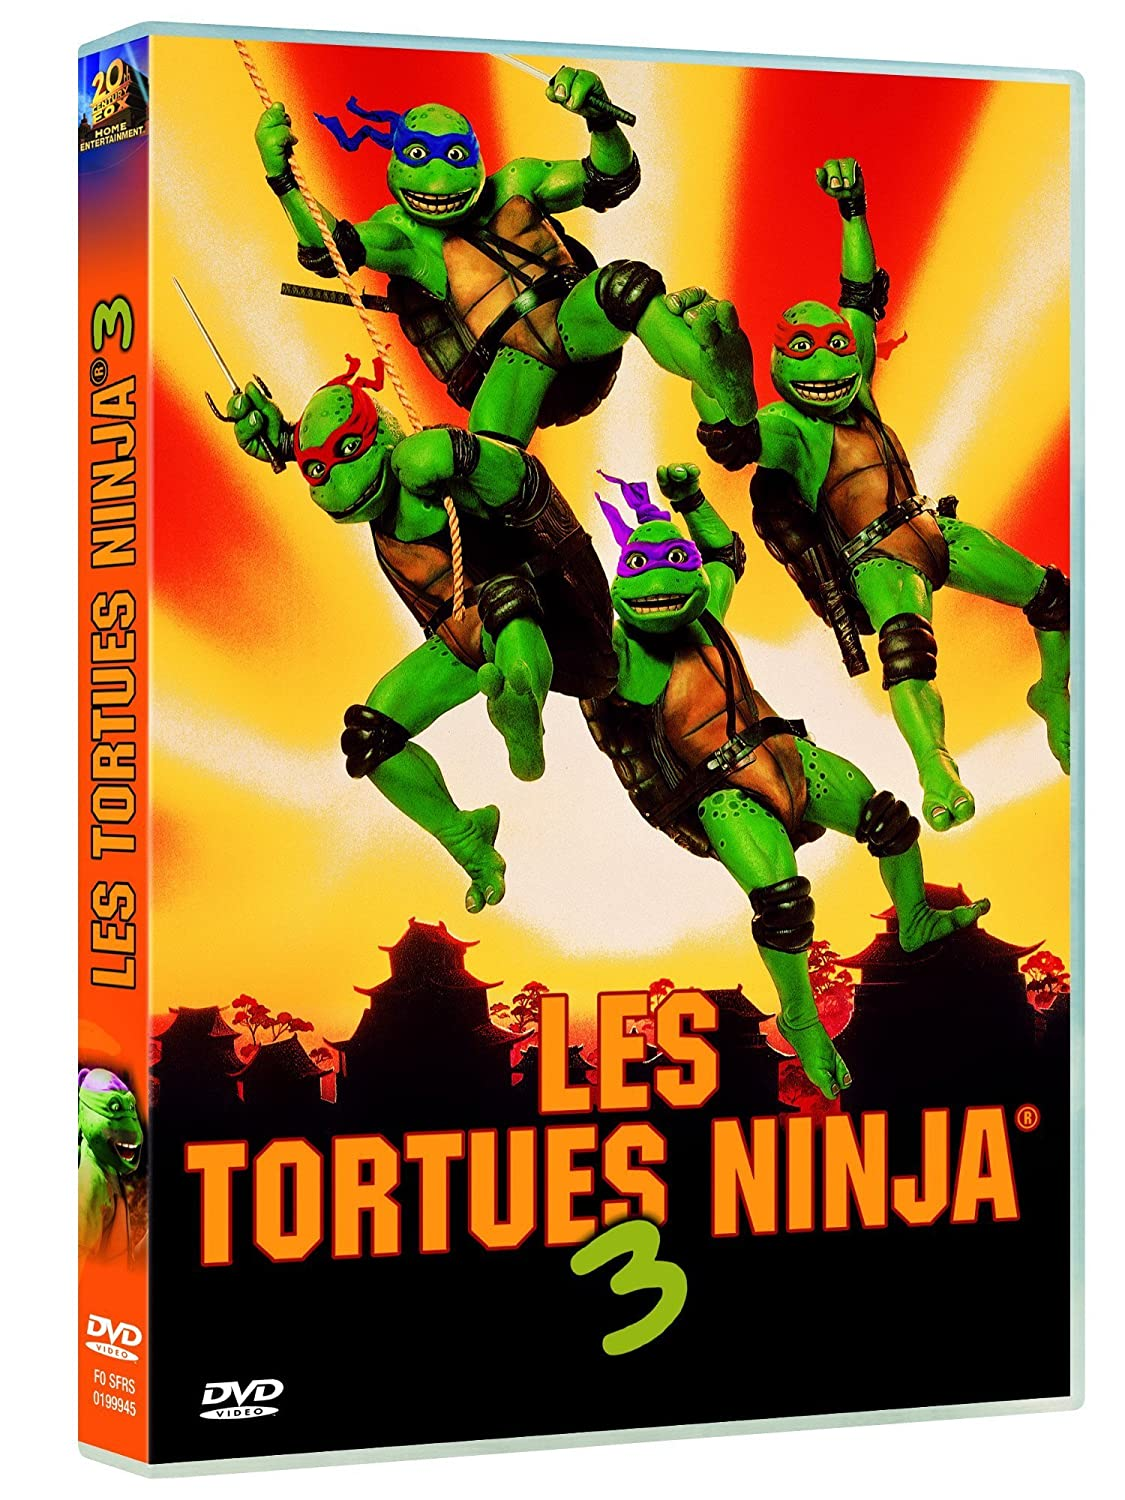 Amazon.com: Tortues Ninja : Nouvelle génération 3: Movies & TV